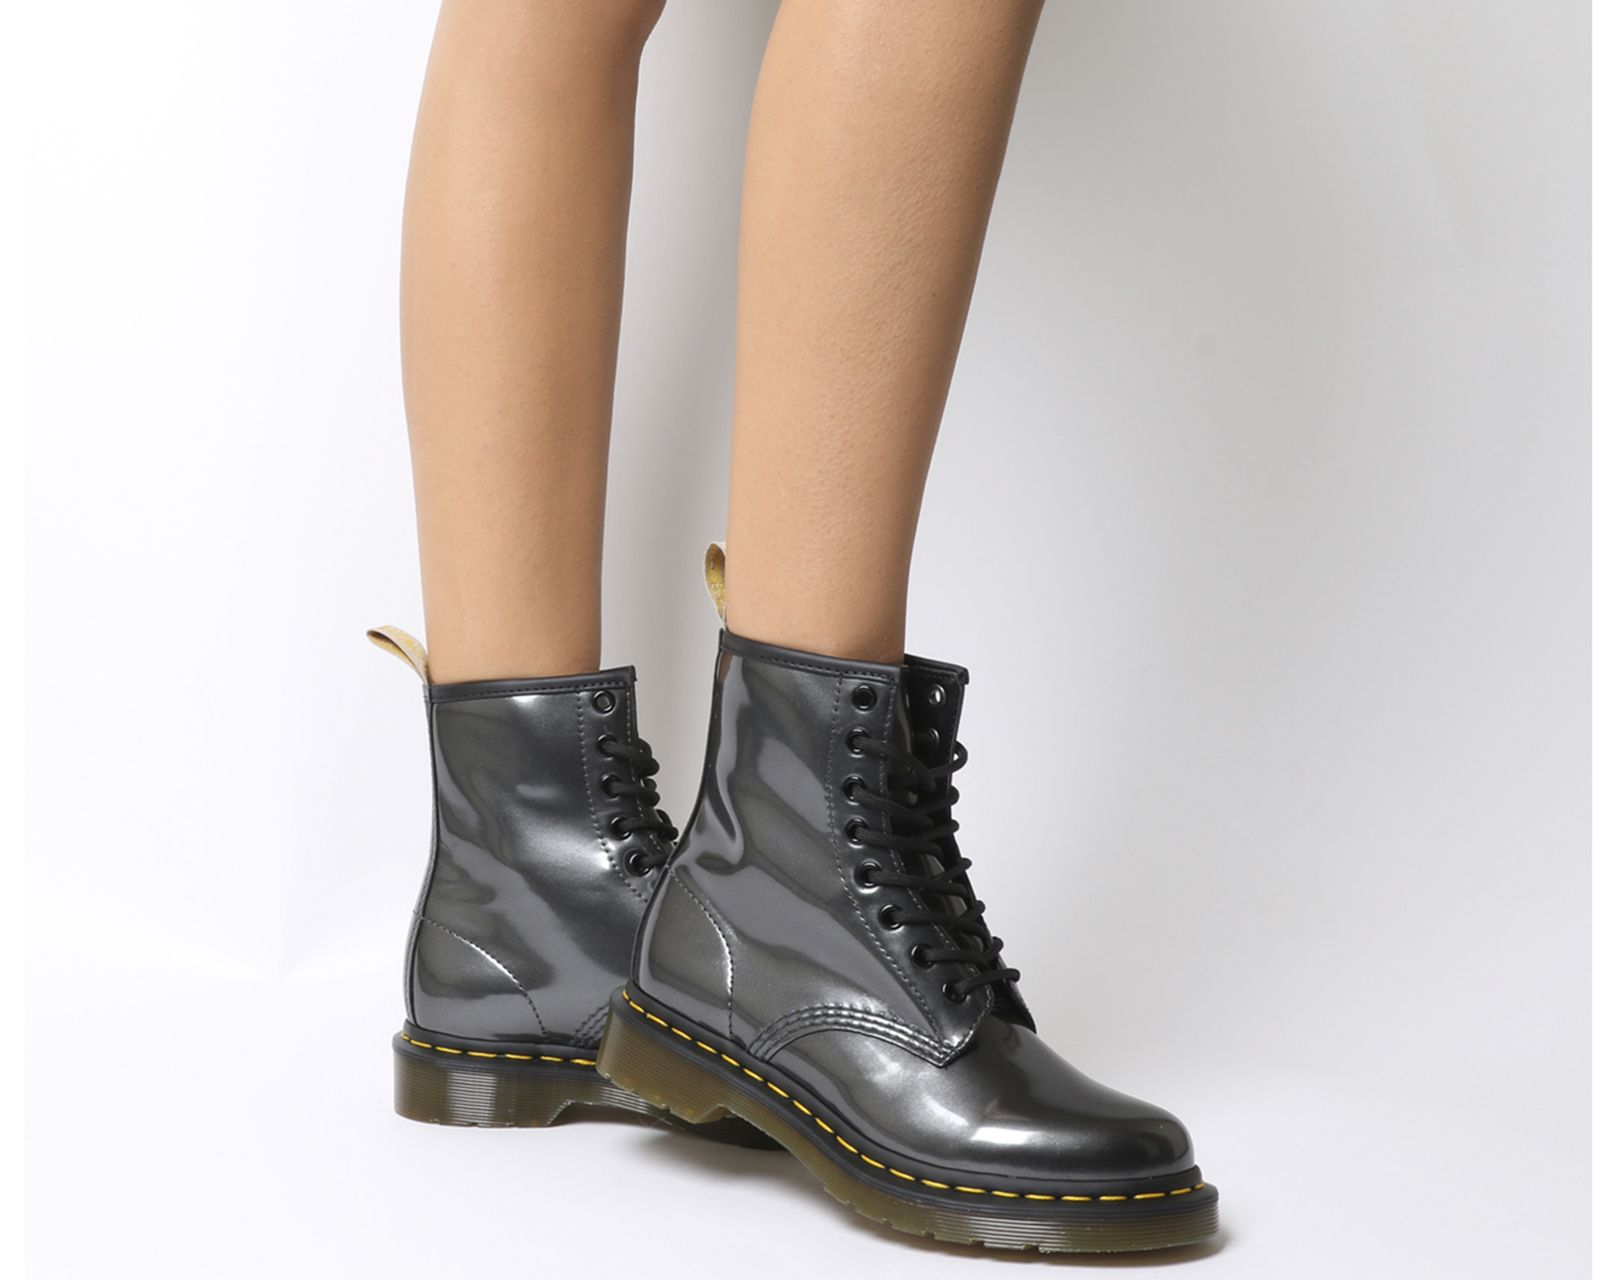 1460 Vegan Chrome Boots | Boots, Insta outfits, Shoes